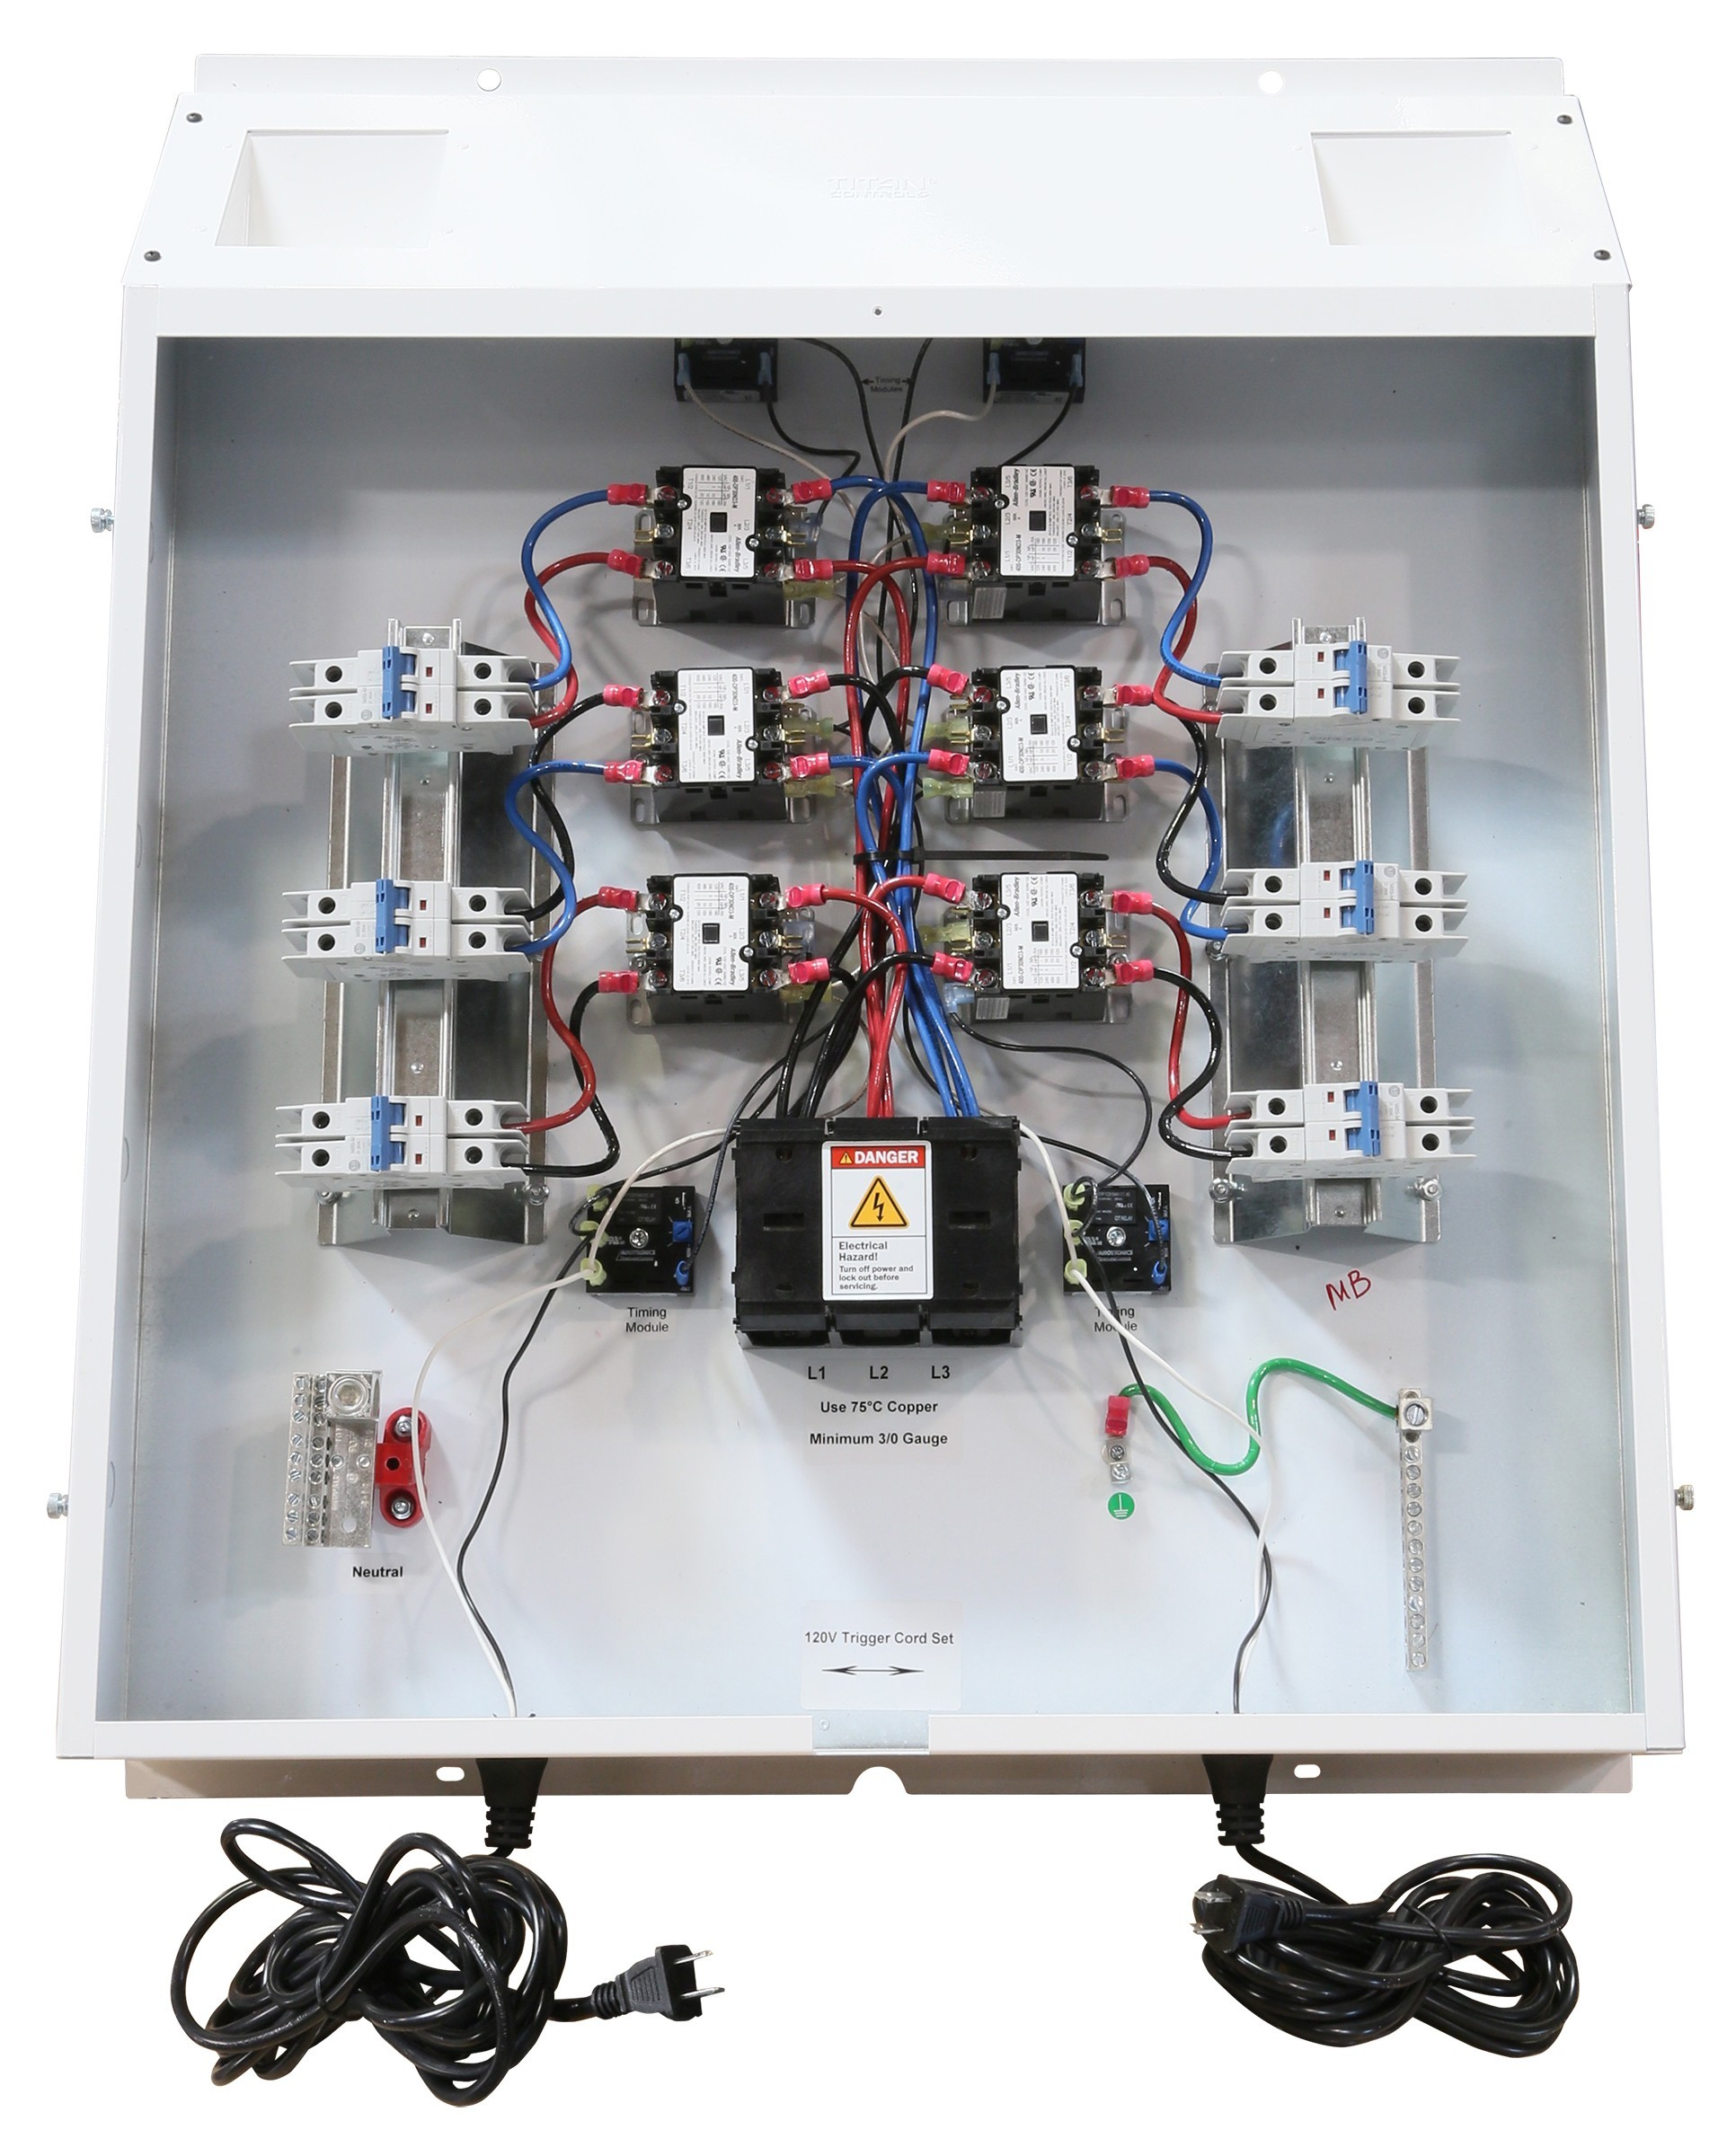 allen bradley motor starter wiring diagram 3 phase irrigation panel arlec ceiling fan with light titan controls helios 200 amp commercial series lighting